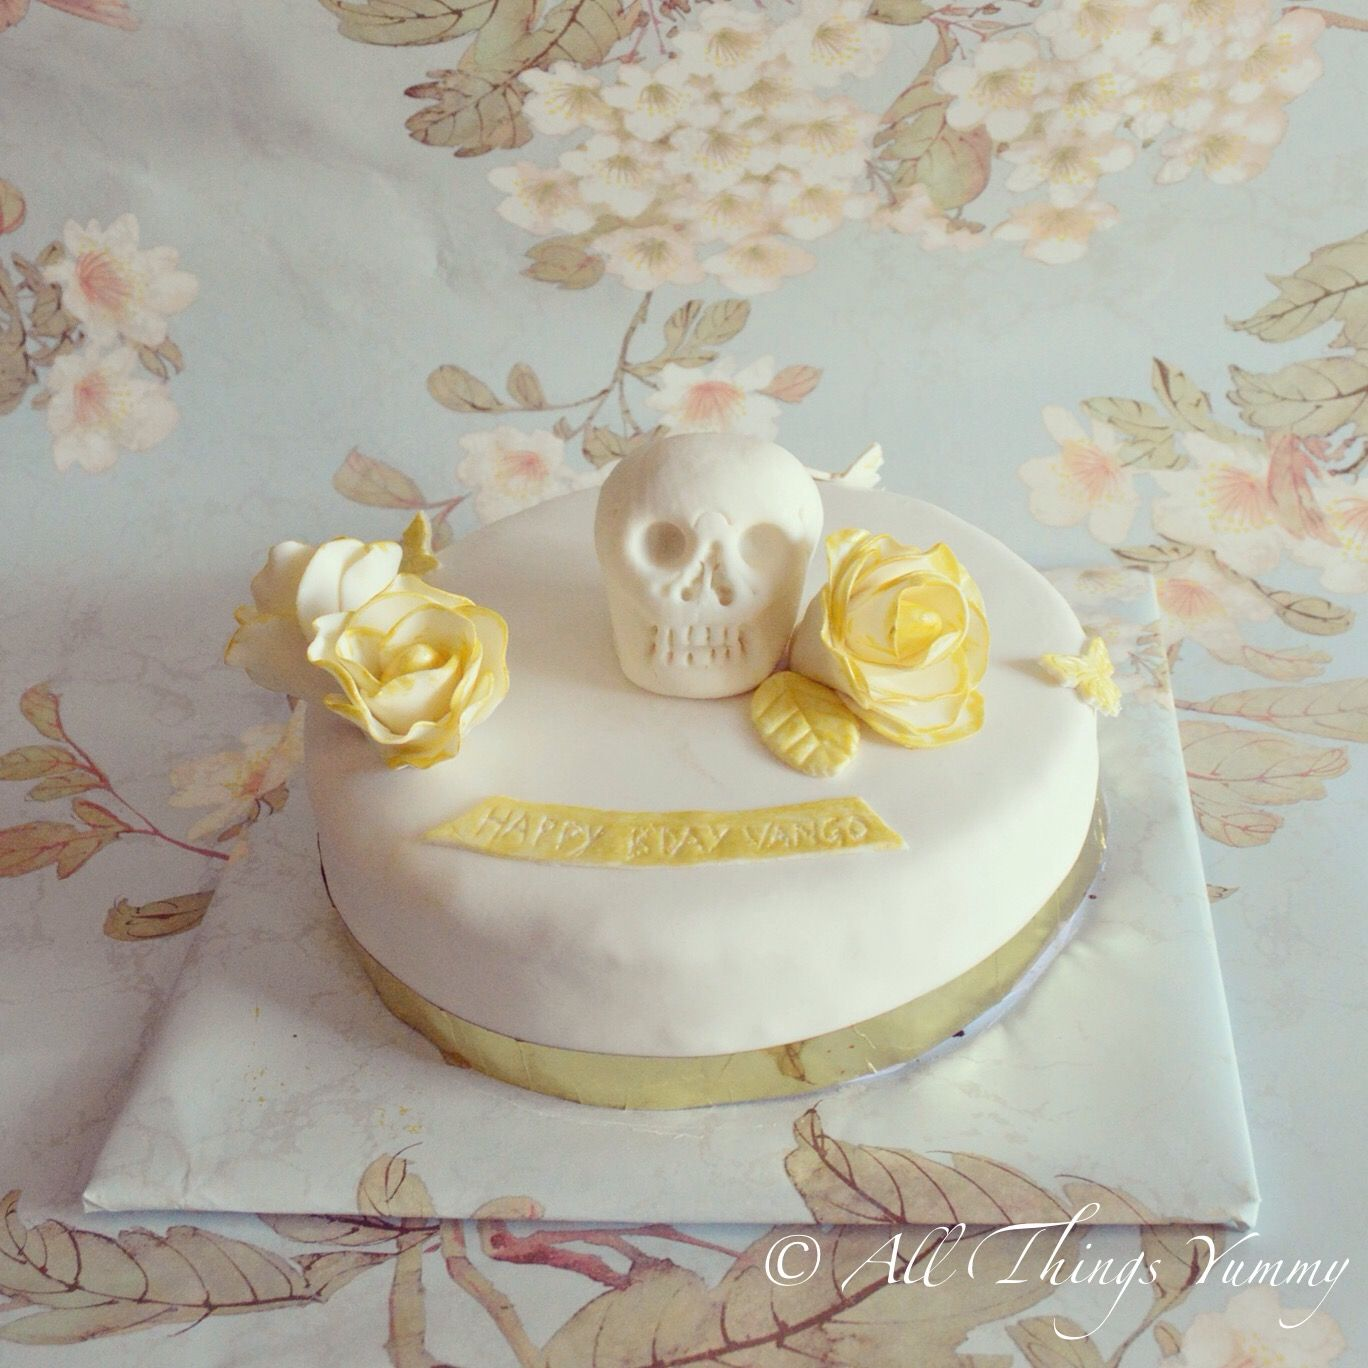 Customized cakes guess the theme pinterest cake and birthday themed cakes skeleton and floral themed birthday cake all things yummy elegant or creepy p flowers sugarflowers edibleart goldandwhite izmirmasajfo